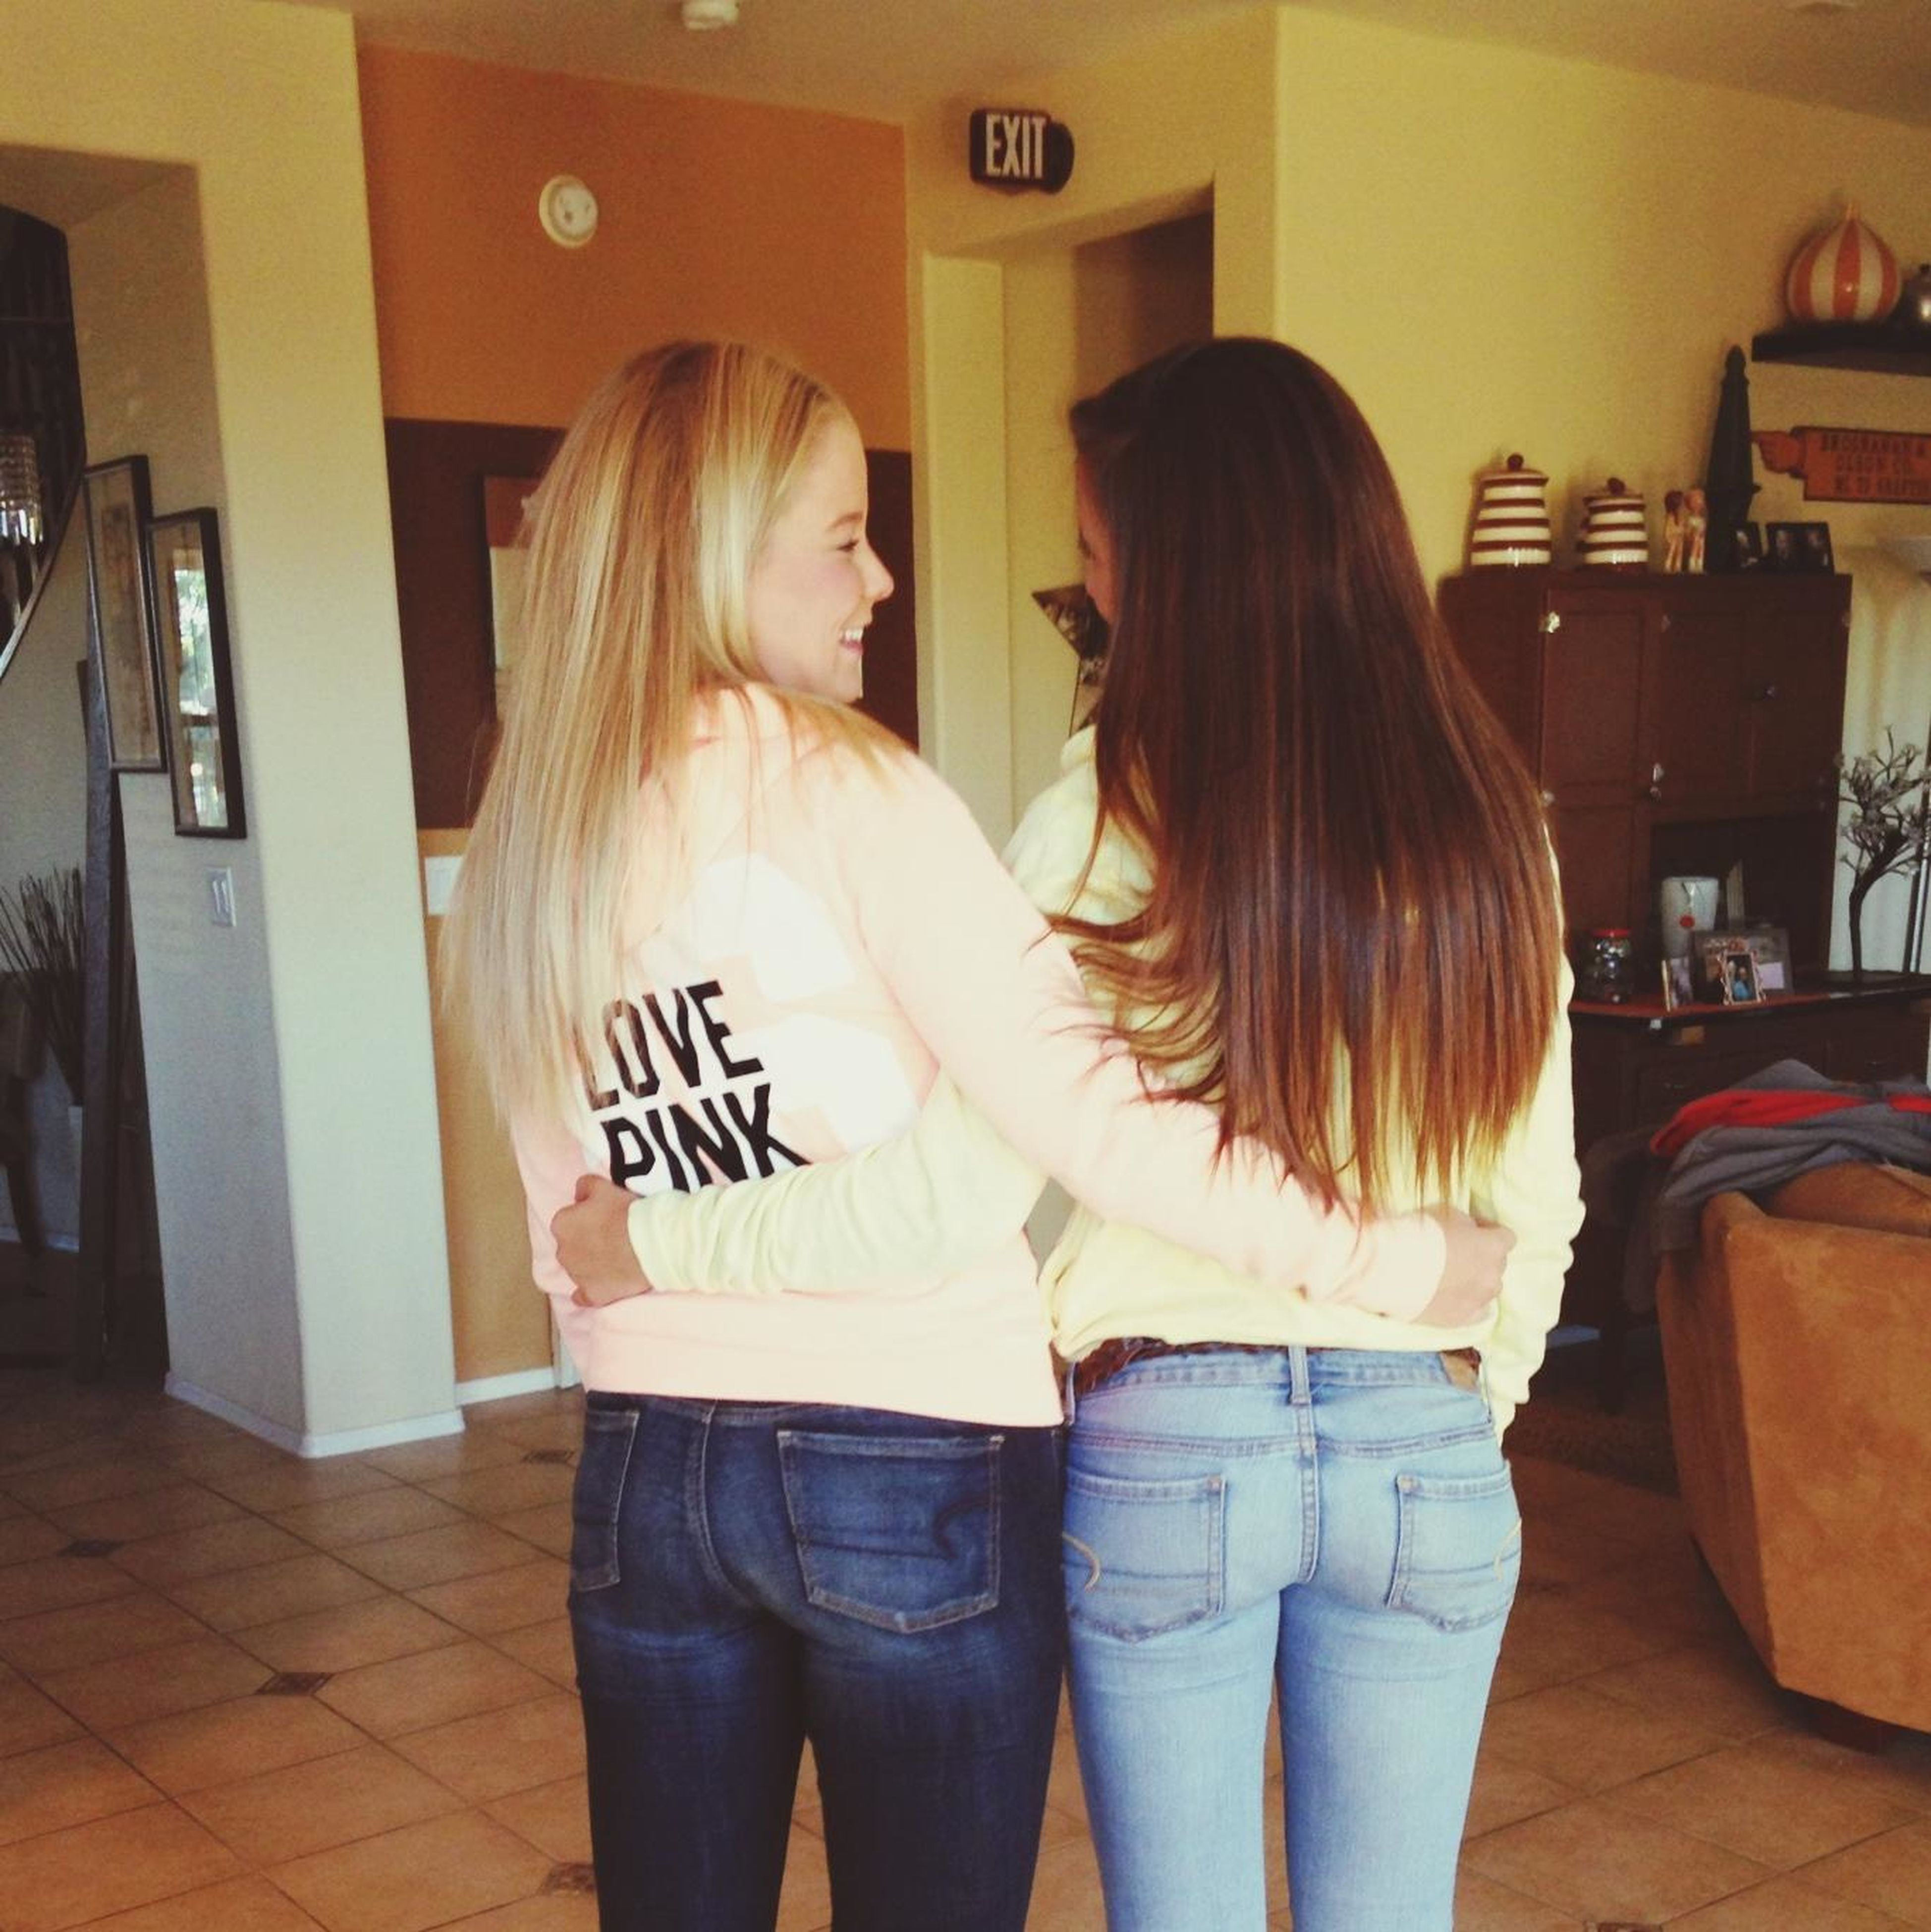 lifestyles, casual clothing, indoors, three quarter length, person, long hair, young women, leisure activity, standing, waist up, young adult, togetherness, bonding, rear view, blond hair, communication, love